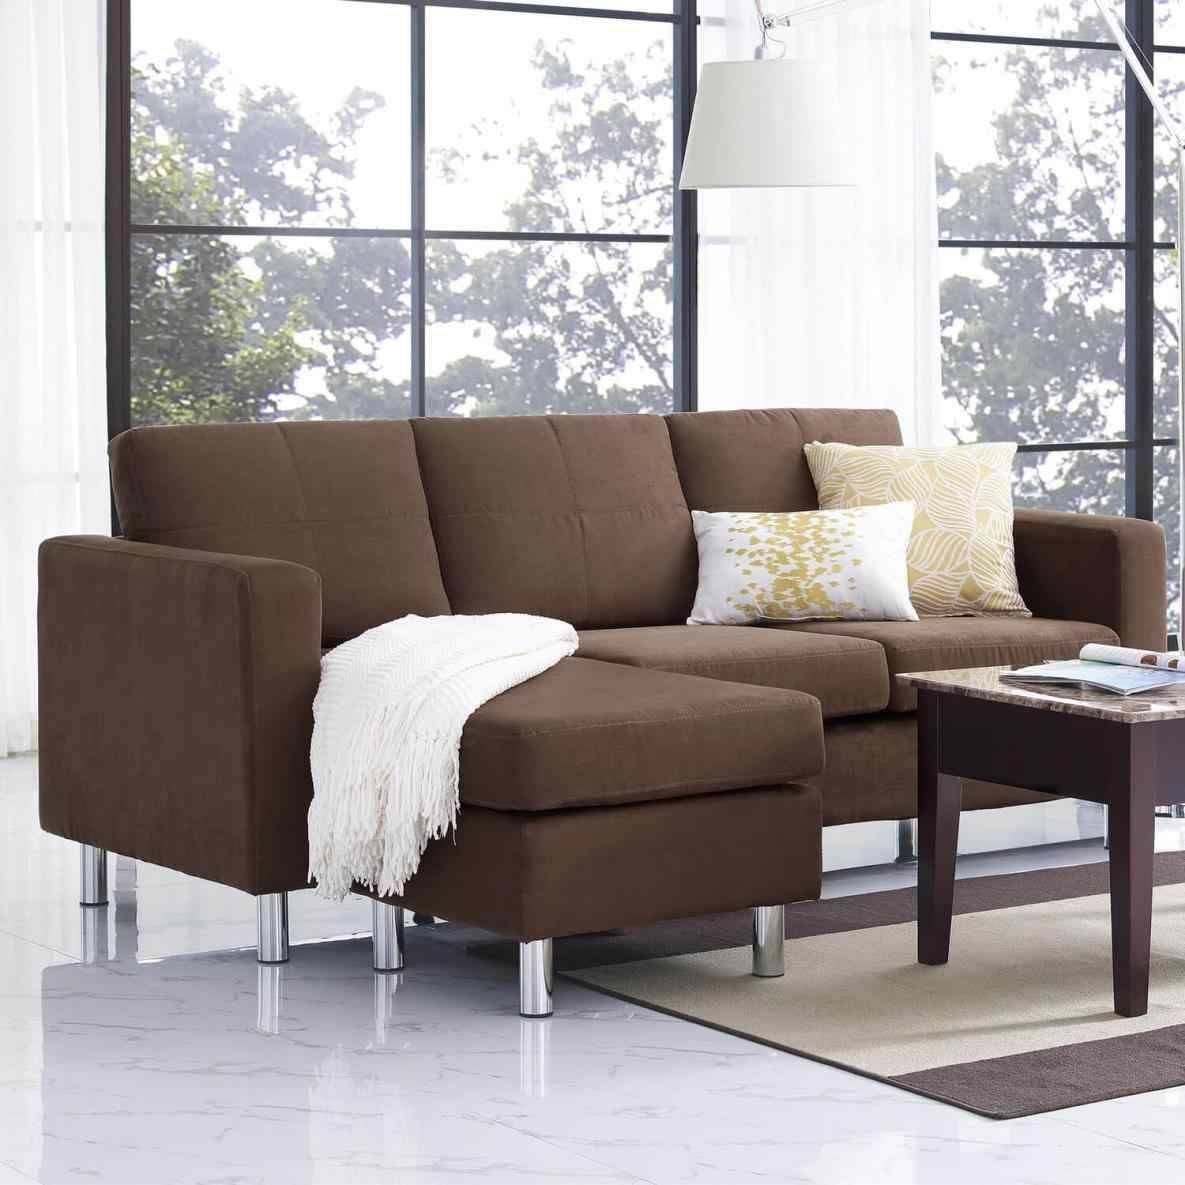 S Sectional Sofa Under 500 Dollars U Fancy Cheap S Sectional Sofa Under 500 Dollars U In Brown Sectional Sofa Small Sectional Sofa Small Space Sectional Sofa